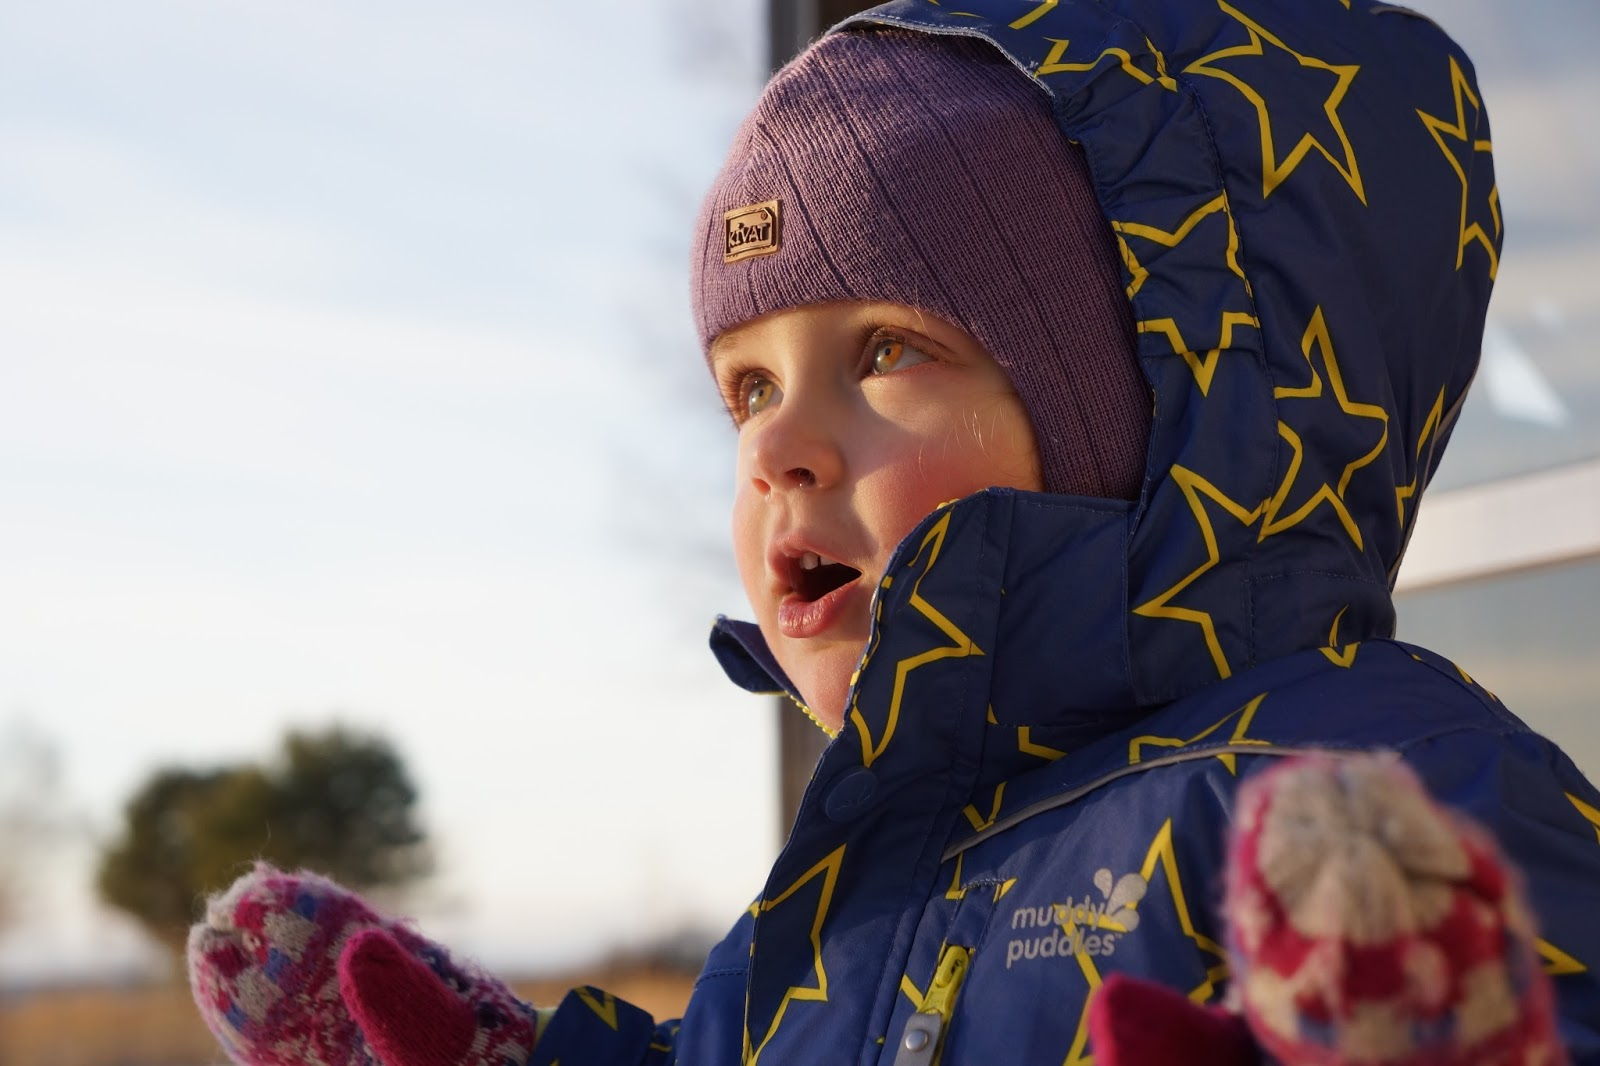 a child wearing ski clothing and playing out in freezing weather